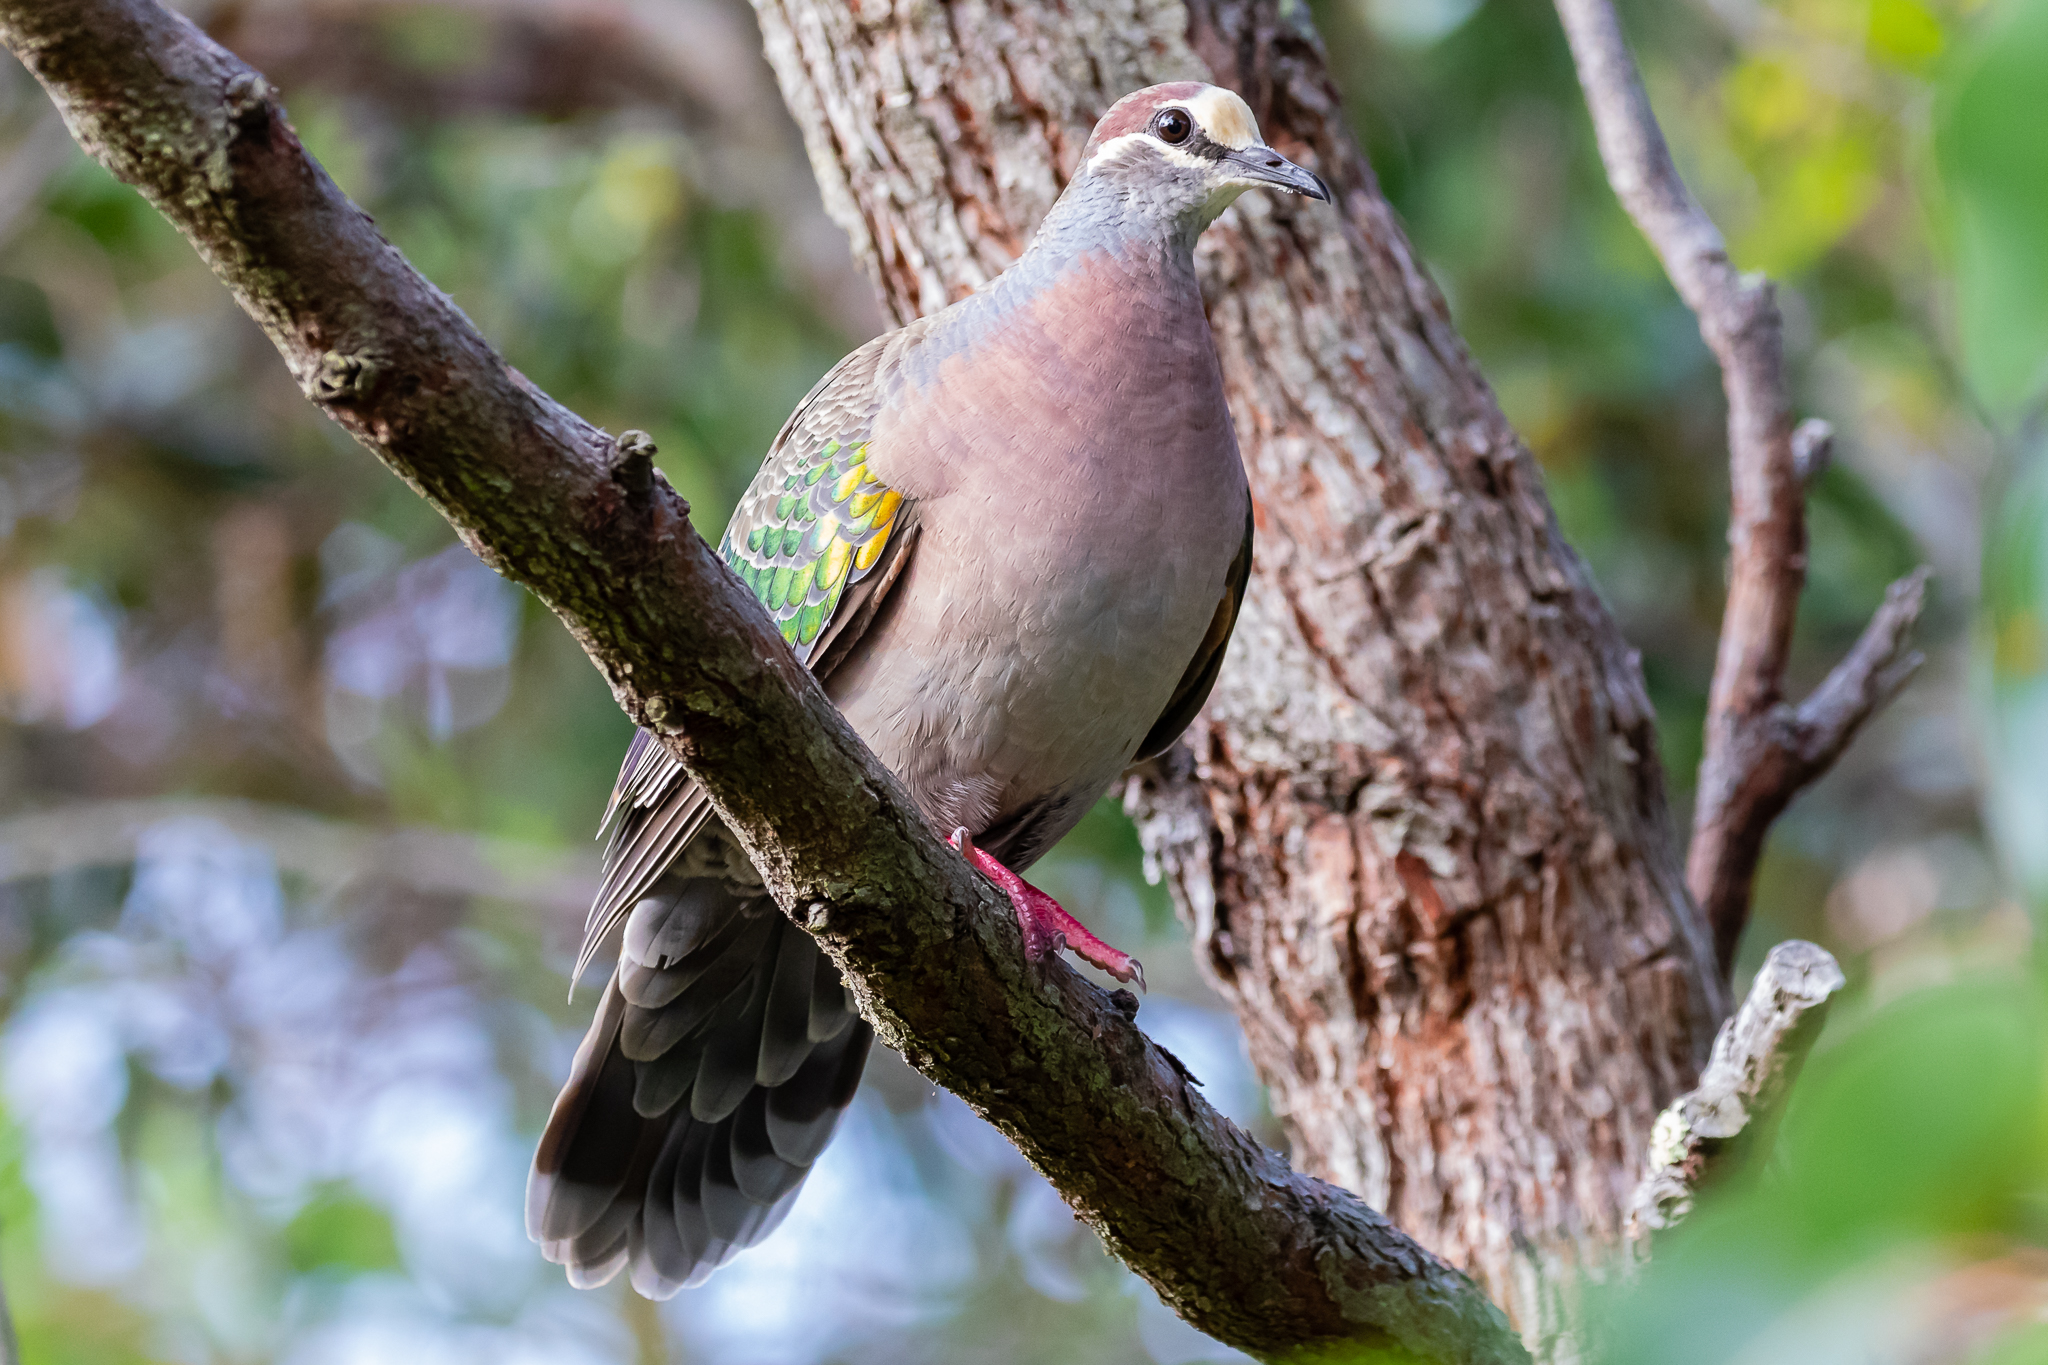 The Common Bronzewing is indeed common around Albany, with its low booming ship's foghorn call.